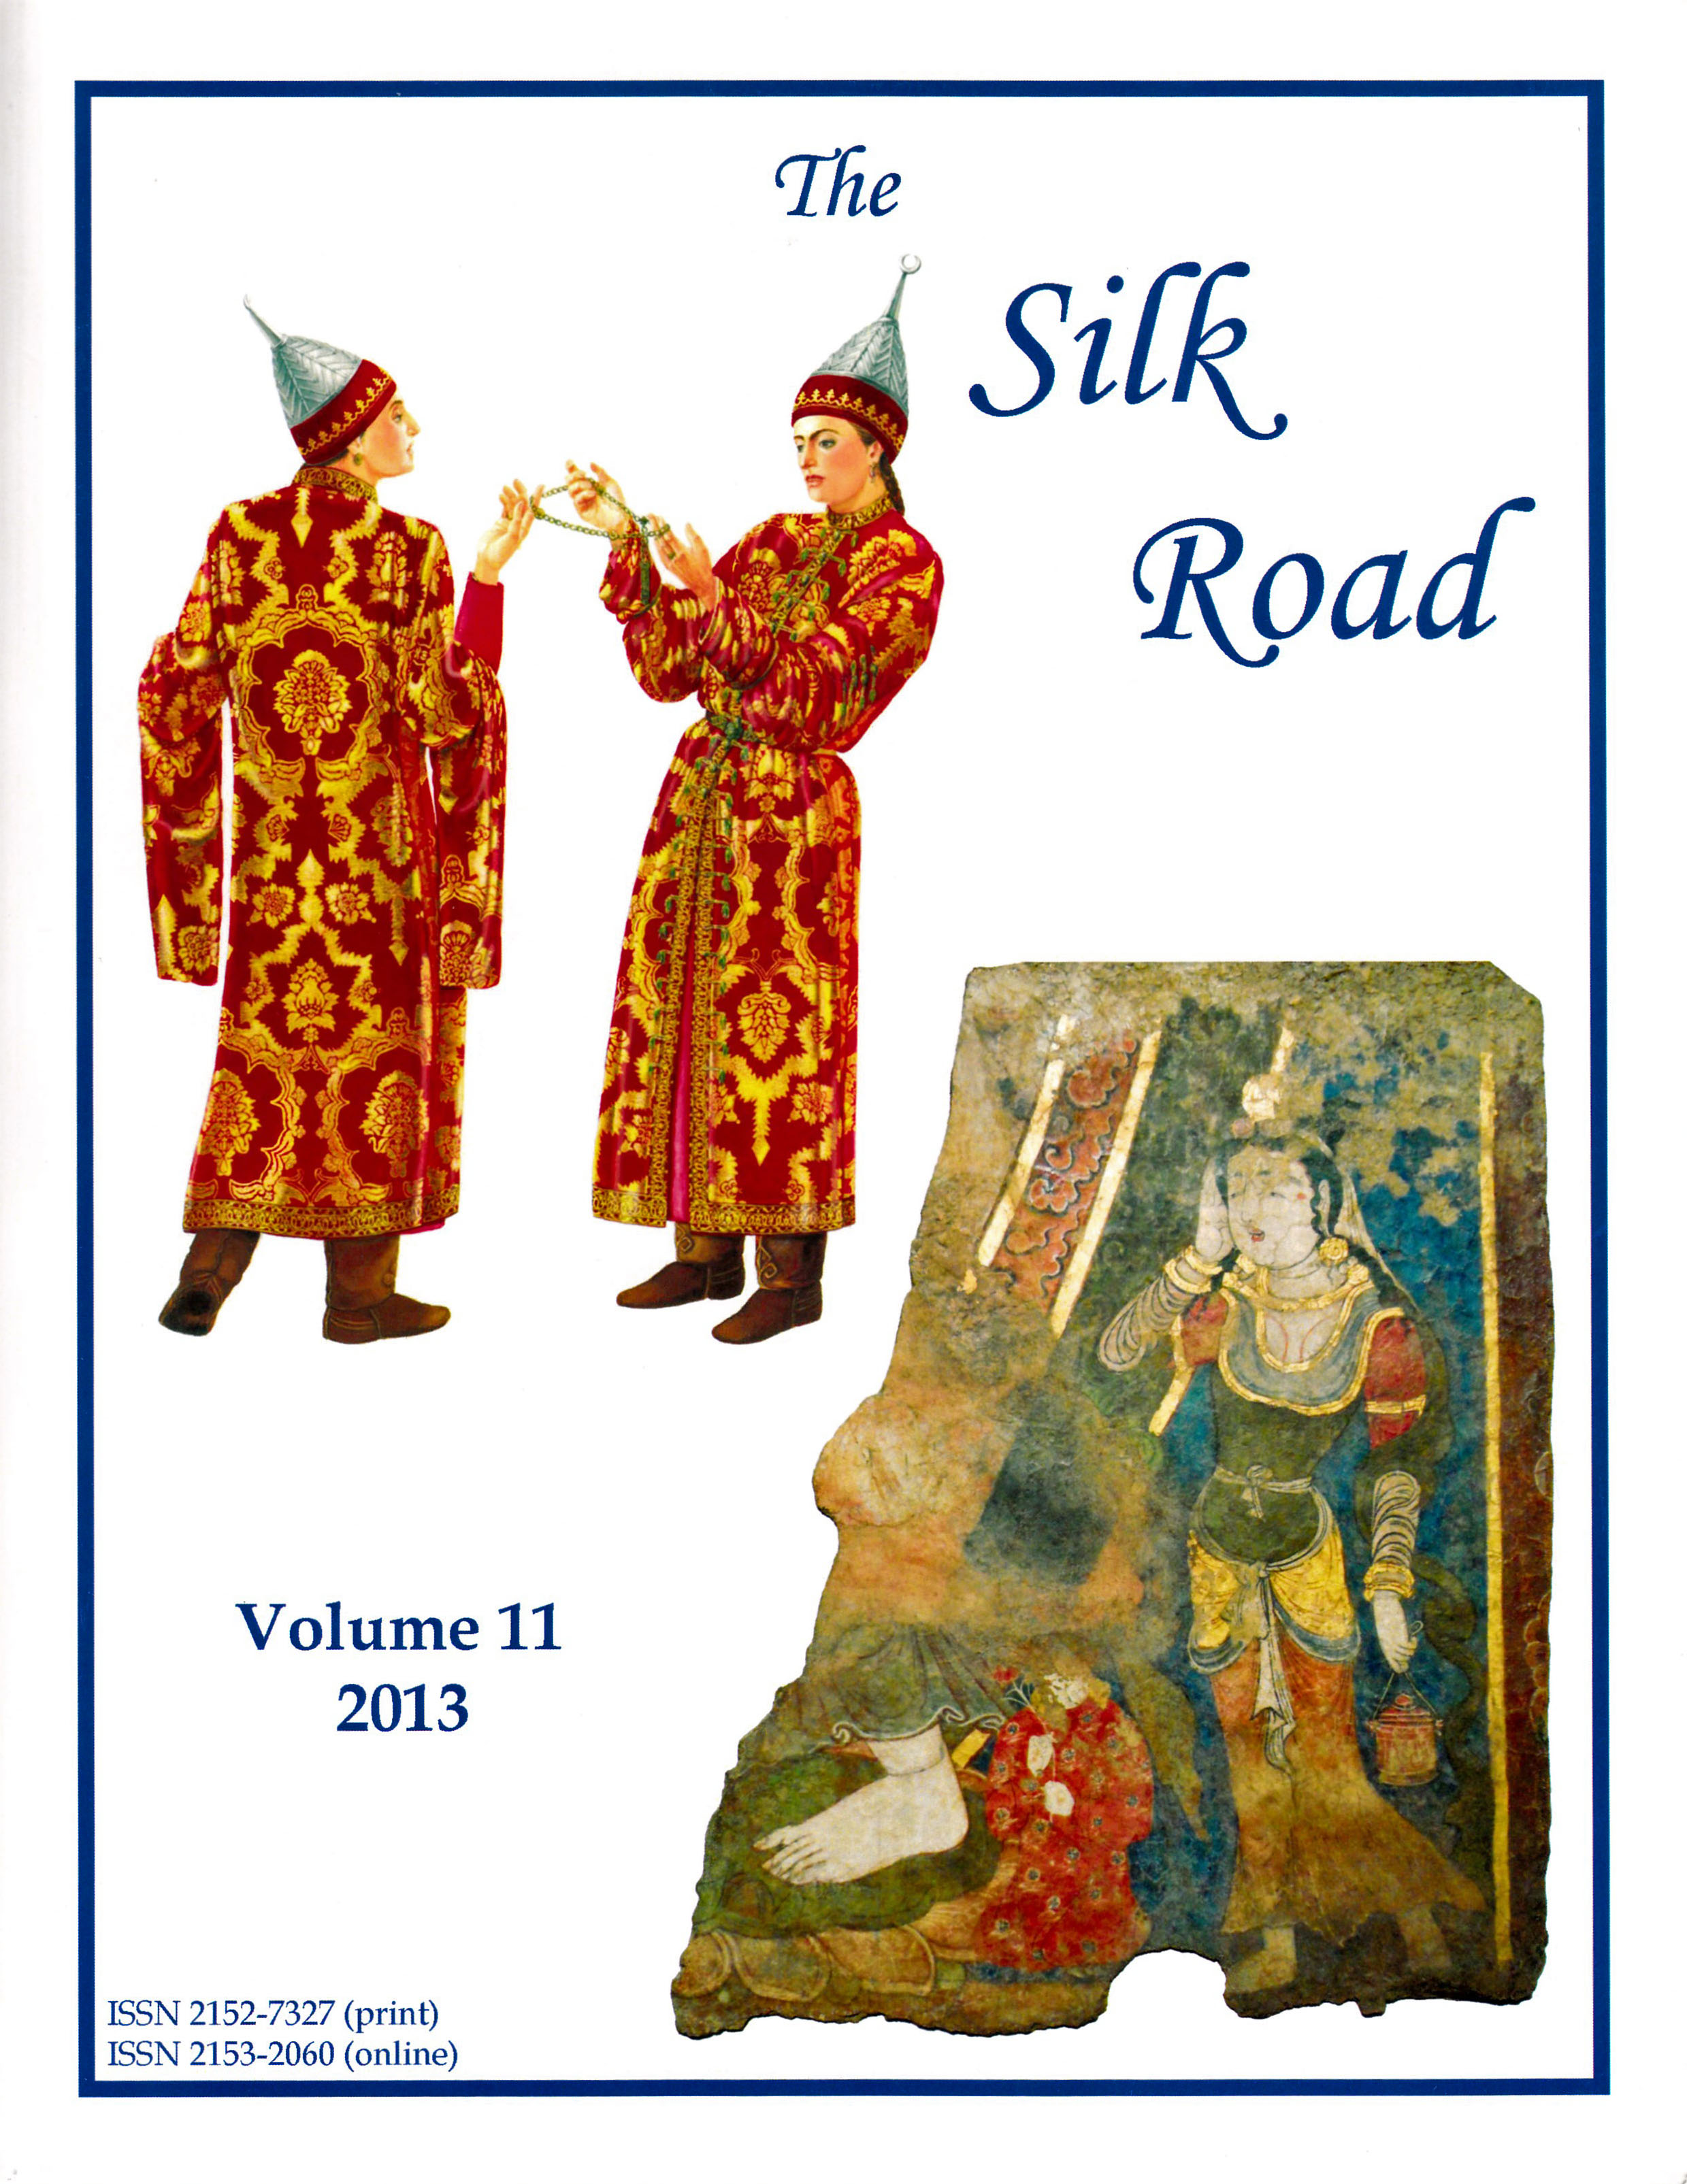 The Silk Road, Volume 11, 2013